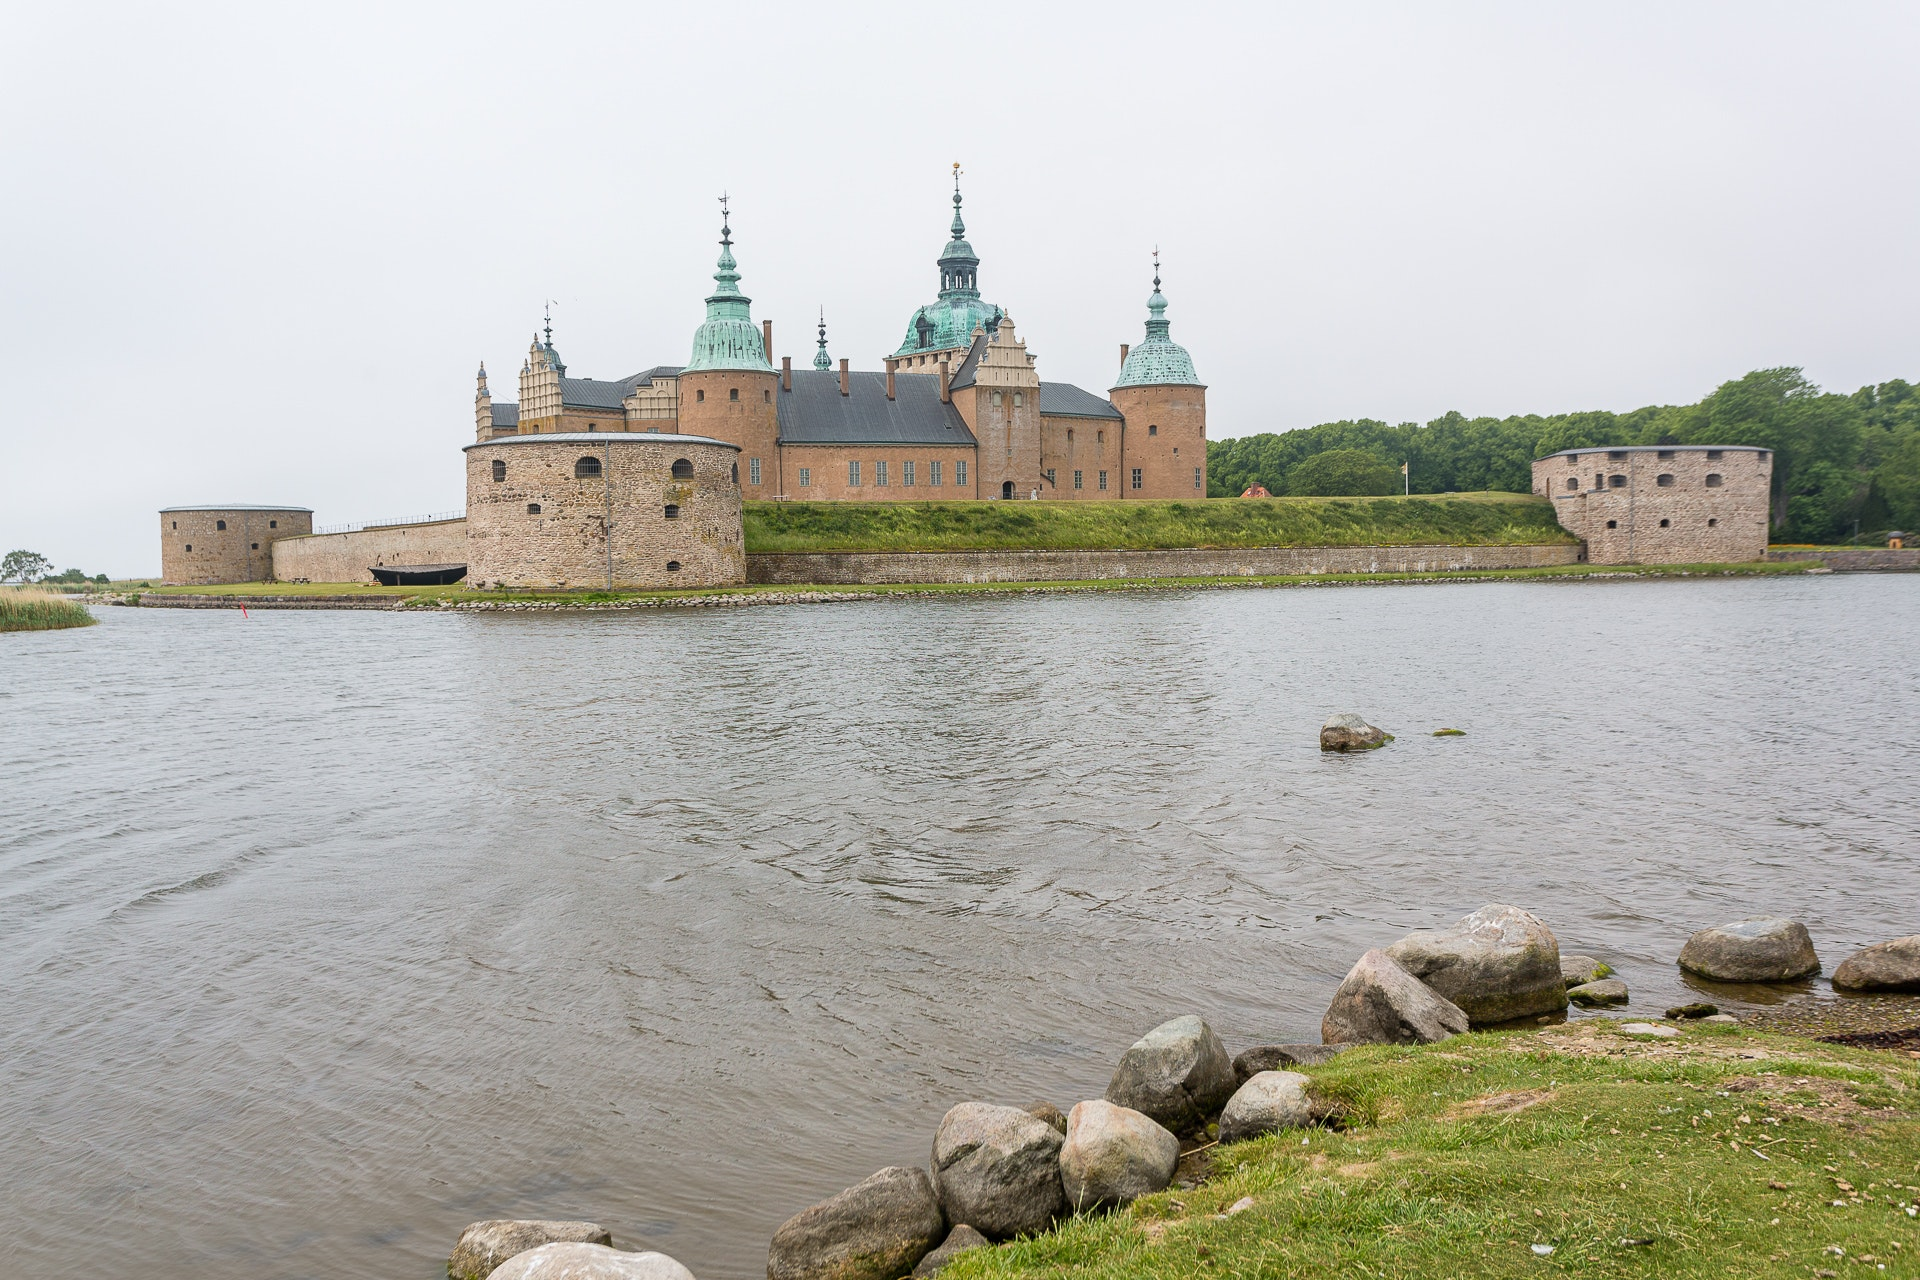 Kalmar Slott from across the water